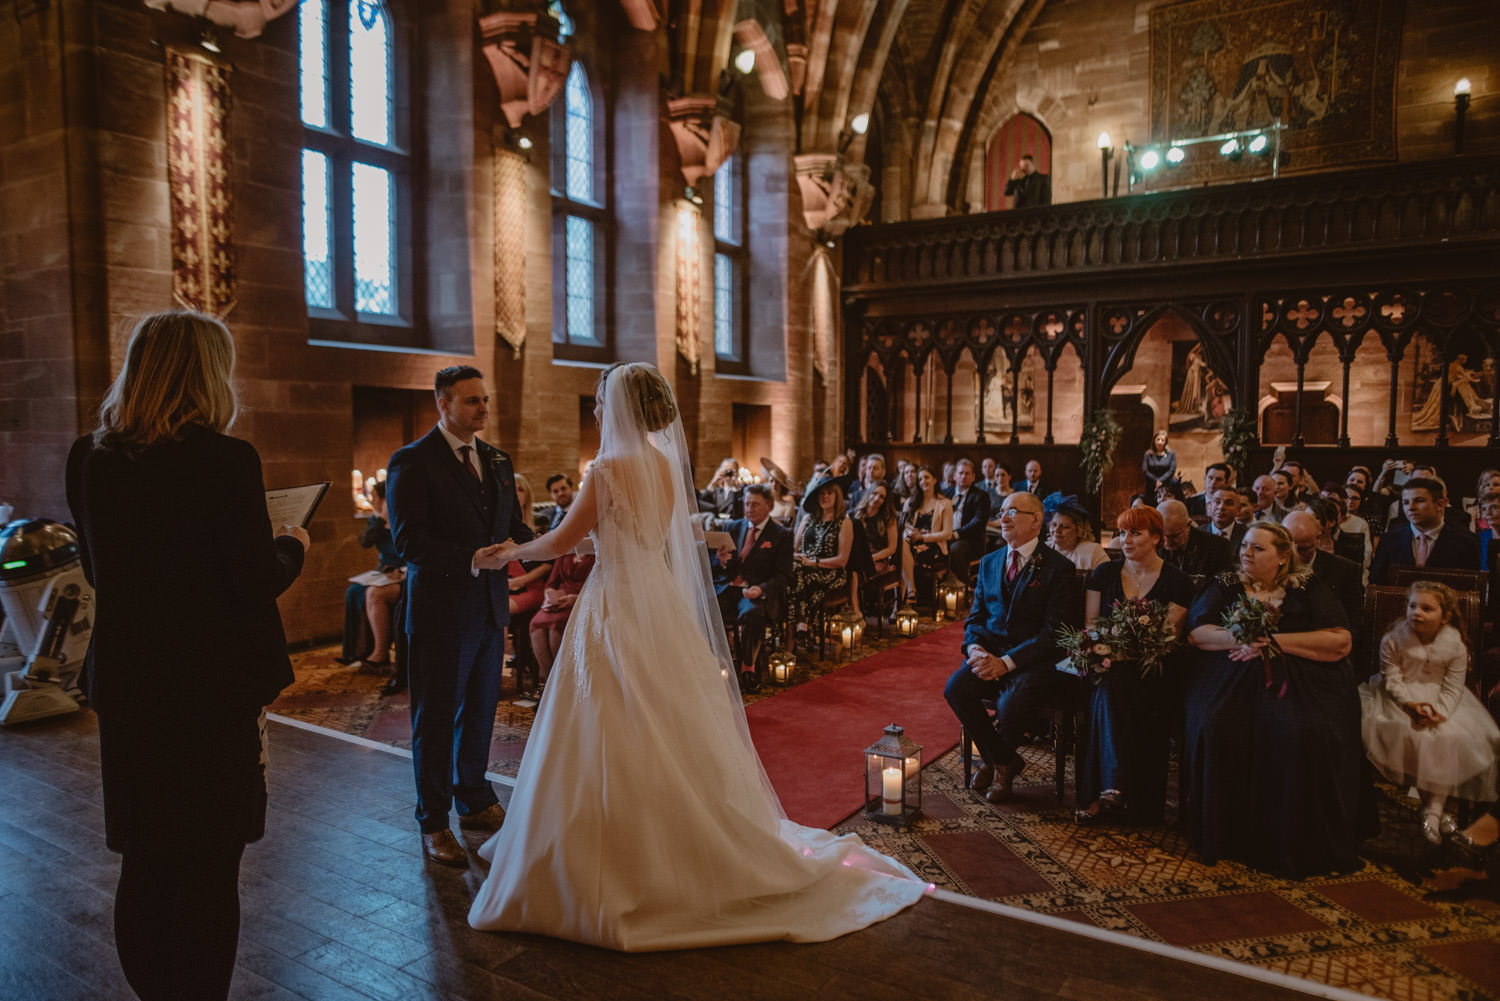 Couple getting married at Peckforton Castle